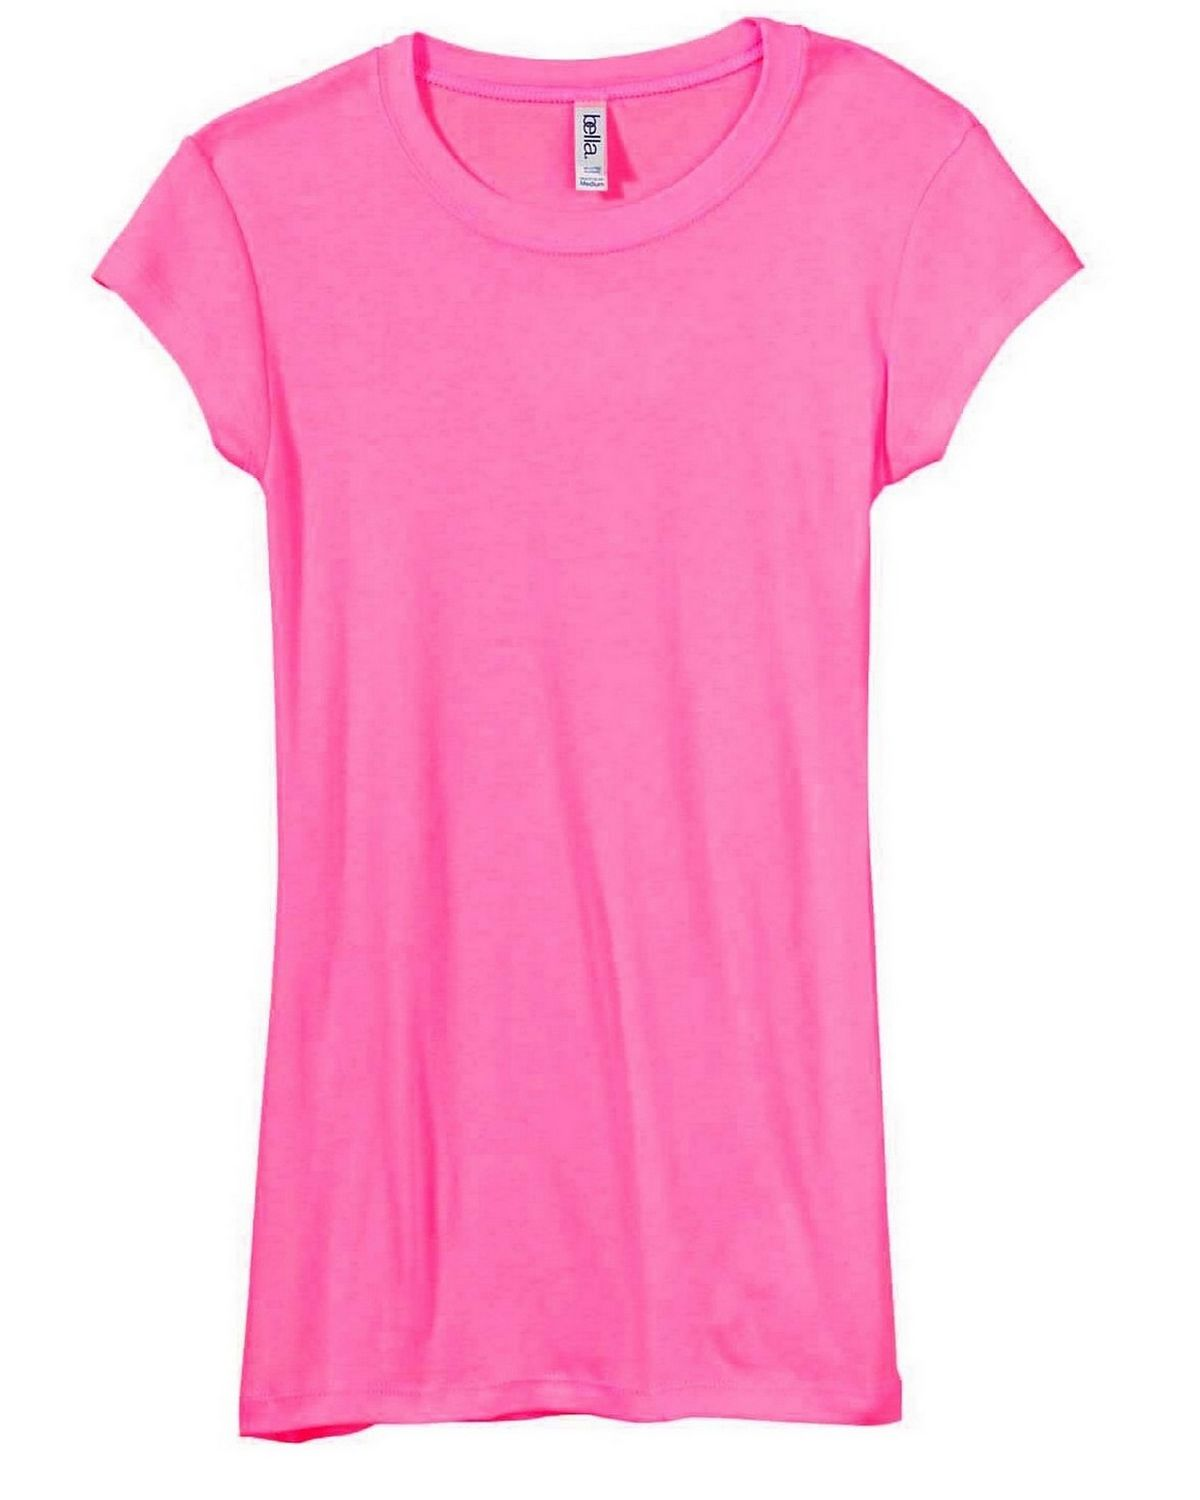 Bella + Canvas 8701 Ladies Kimberley Sheer Rib Longer-Length T-Shirt - Berry - M 8701